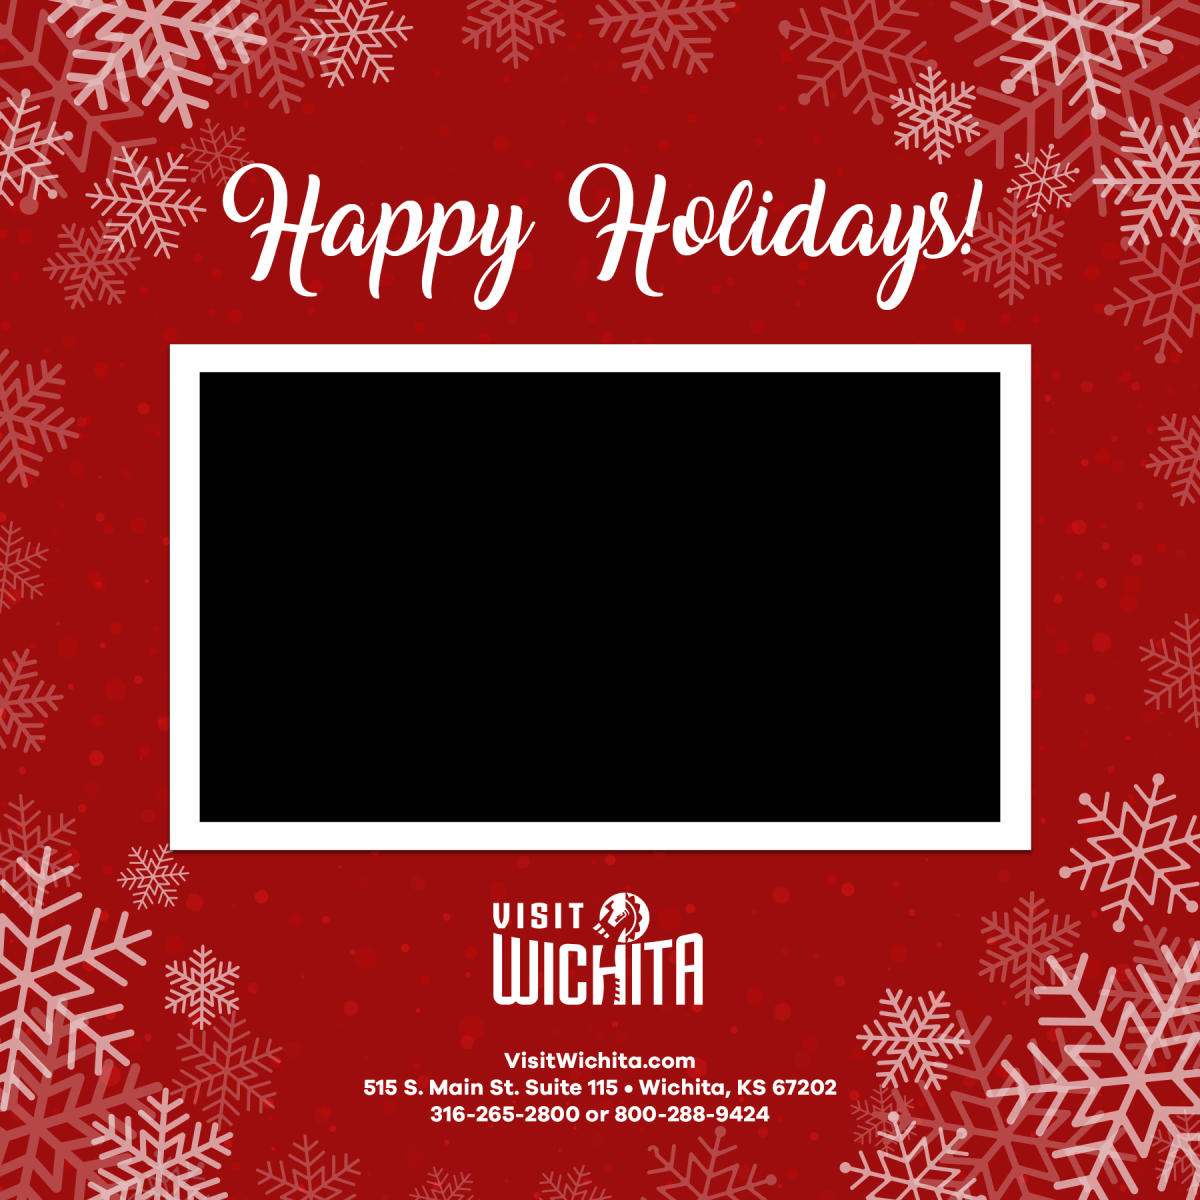 Holiday Card Landing Page 2018